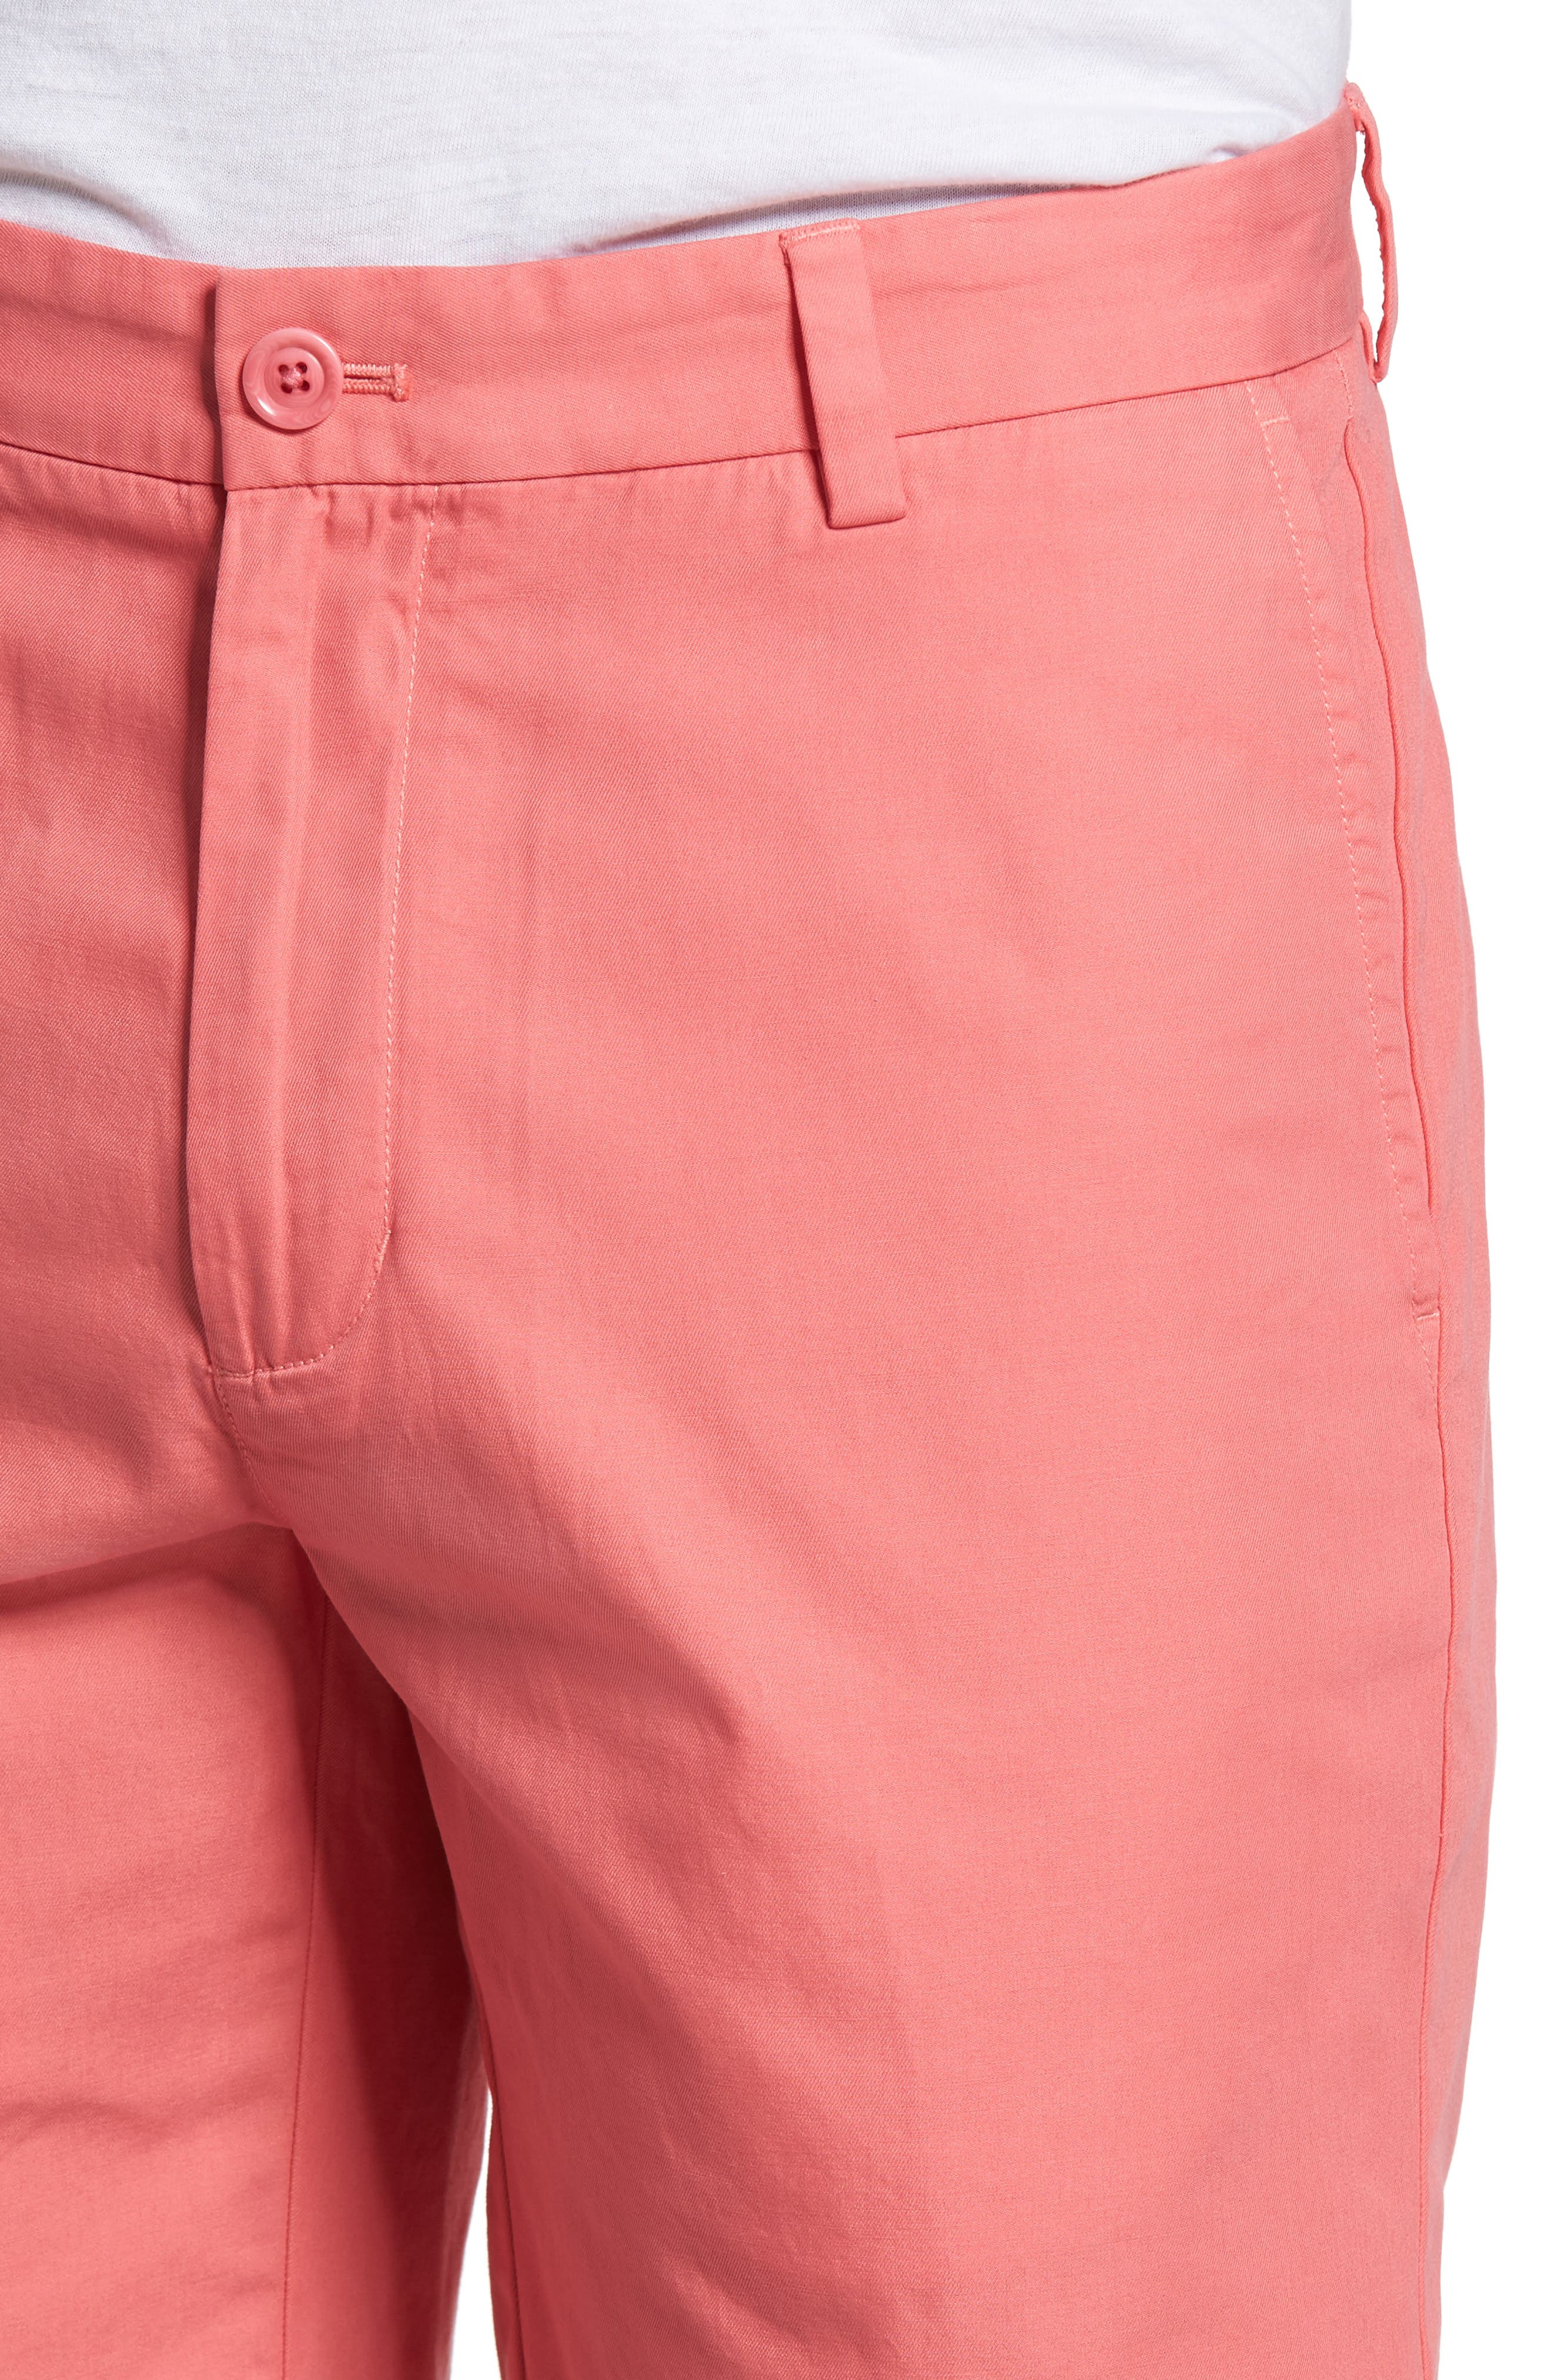 9 Inch Stretch Breaker Shorts,                             Alternate thumbnail 4, color,                             LOBSTER REEF